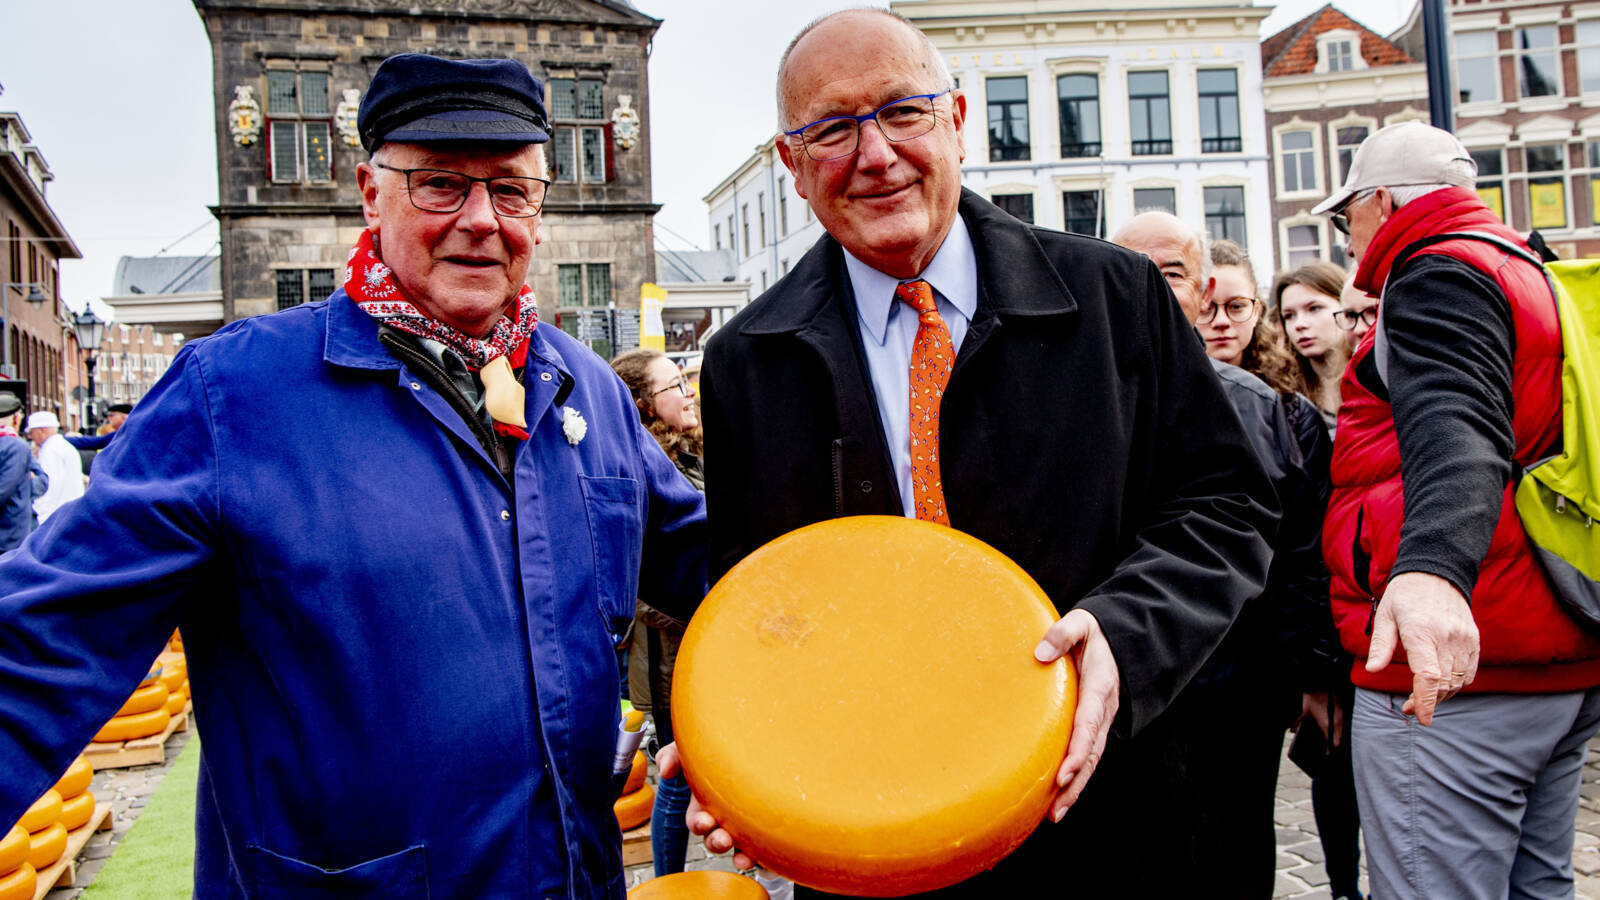 Trump's ambasador Pete Hoekstra with Gouda cheese in 2018, ANP photo